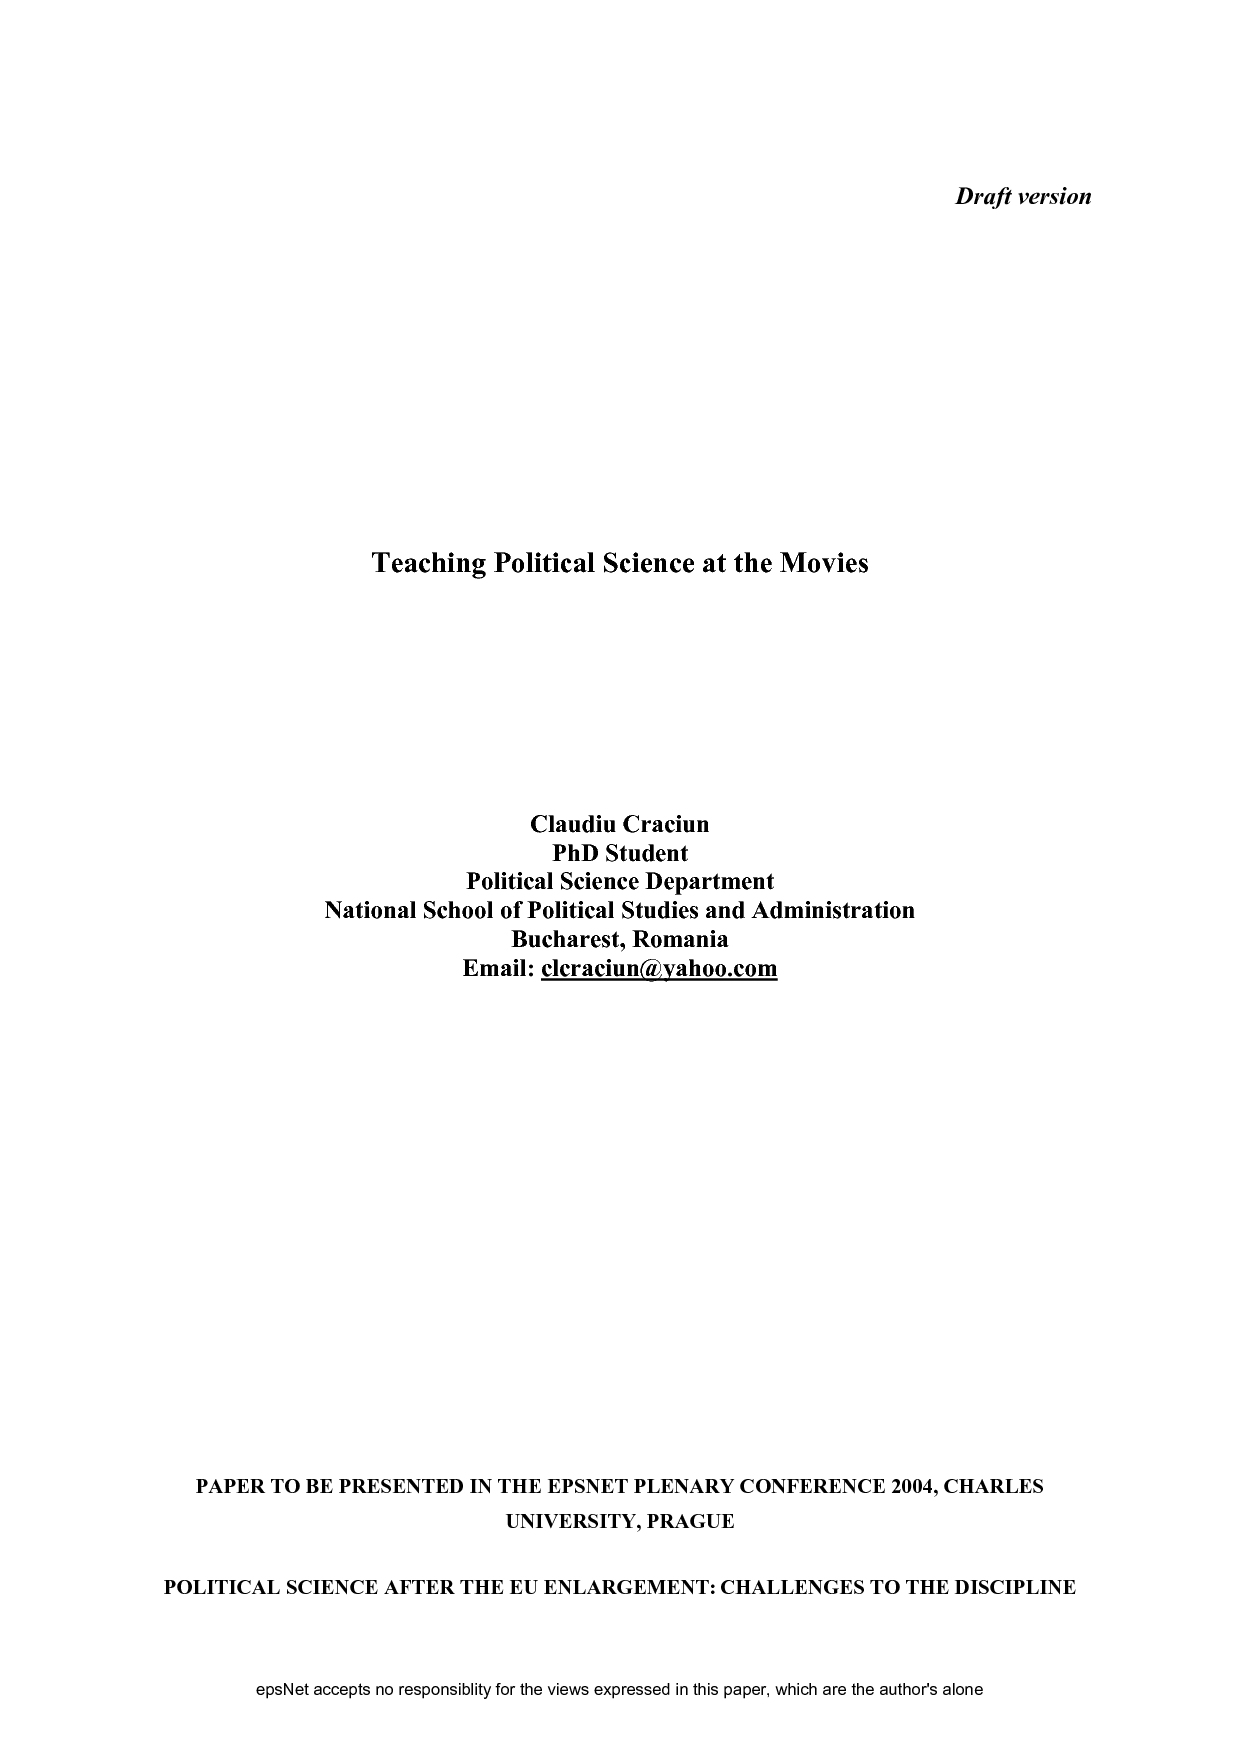 019 Research Paper Apsa Example Cover Page 319500 Template For Rare Apa Format Sample Title Full